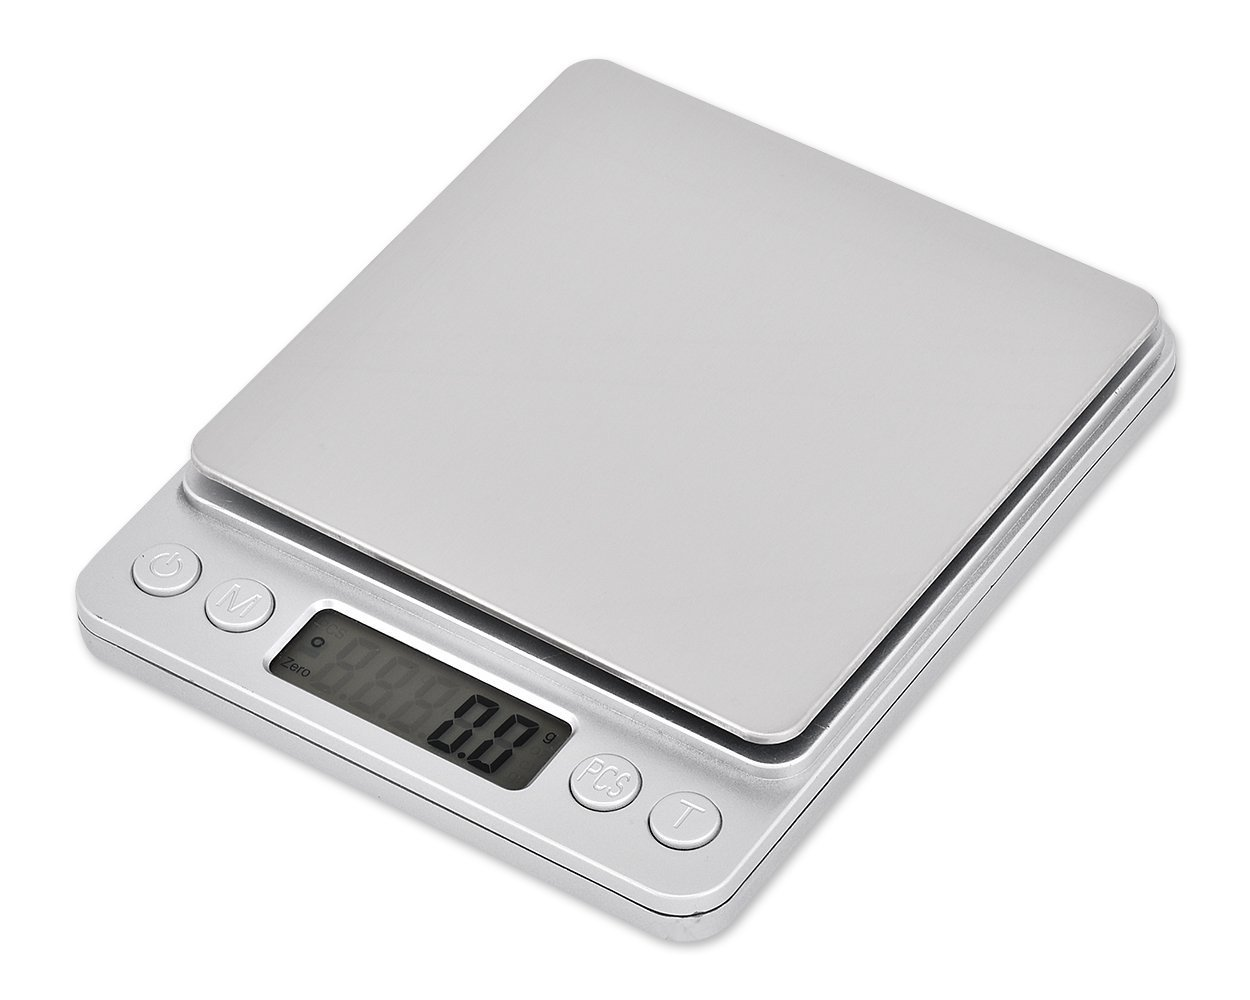 DSstyles Weight Scale Stainless Steel Kitchen Scale 2000g x 0.1g Digital Scale with LCD Display and 2 Clear Trays